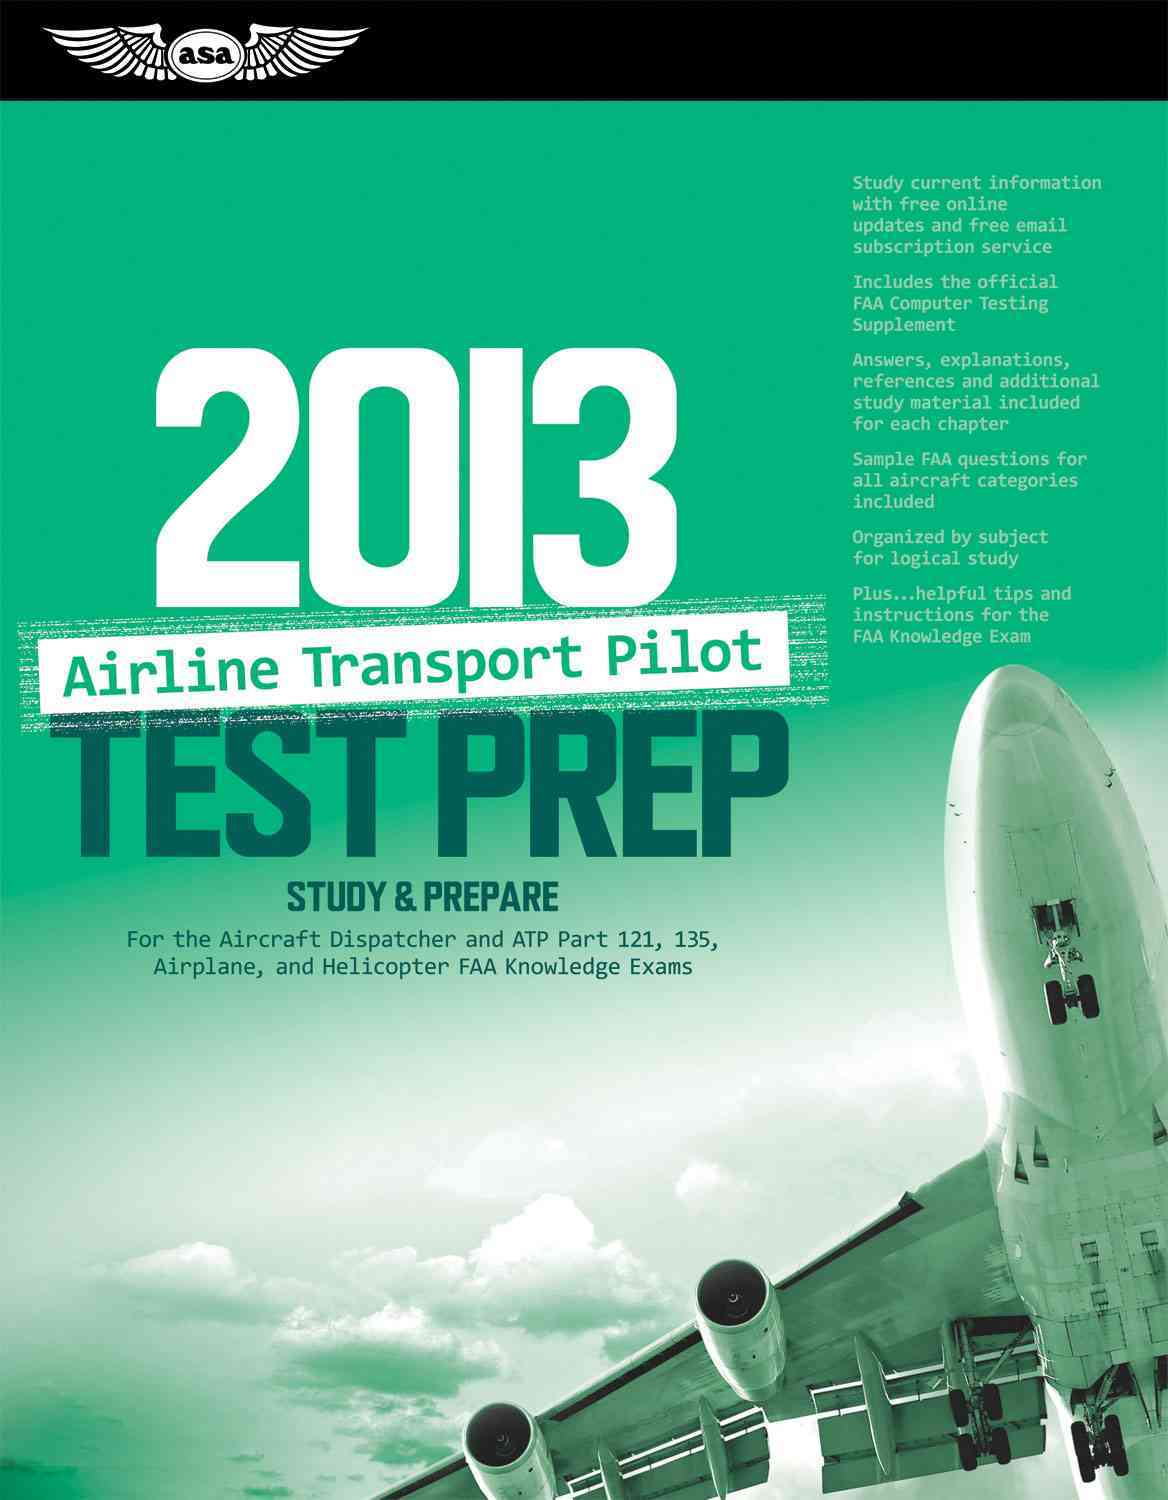 Airline Transport Pilot Test Prep 2013: Study & Prepare for the Aircraft Dispatcher and ATP Part 121, 135, Airplane and Helic...